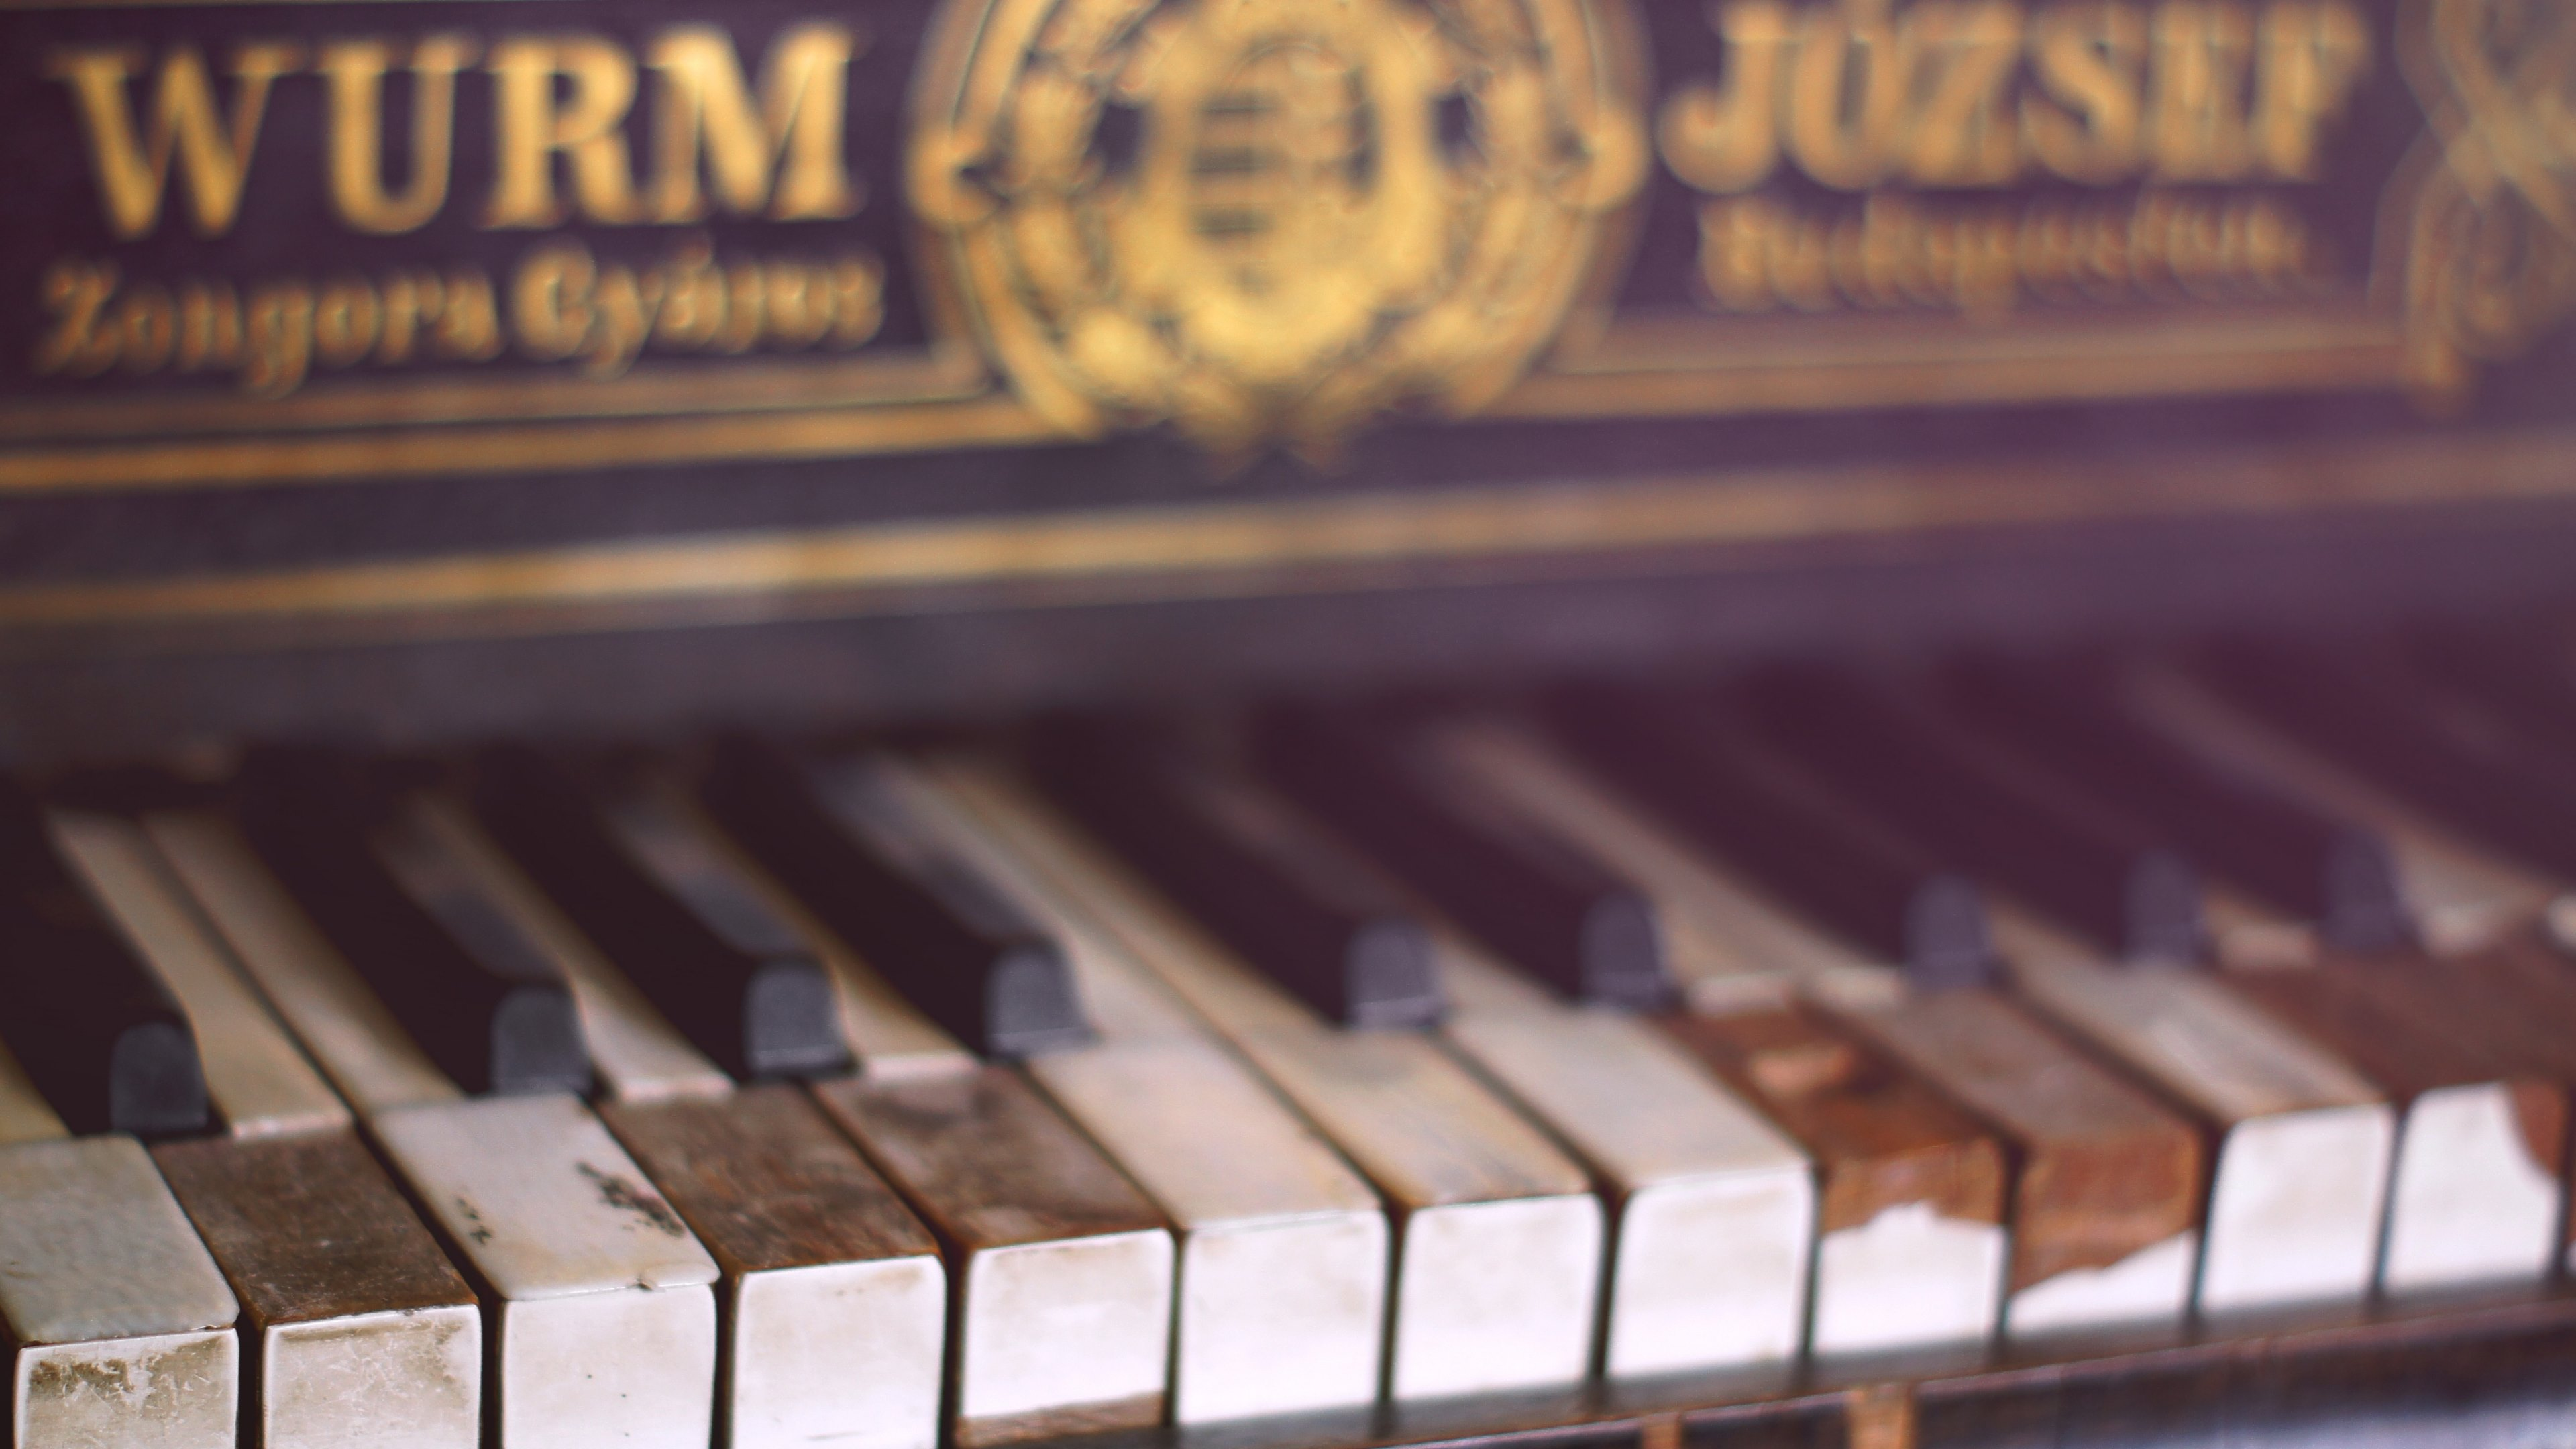 4k Piano Wallpapers High Quality Download Free